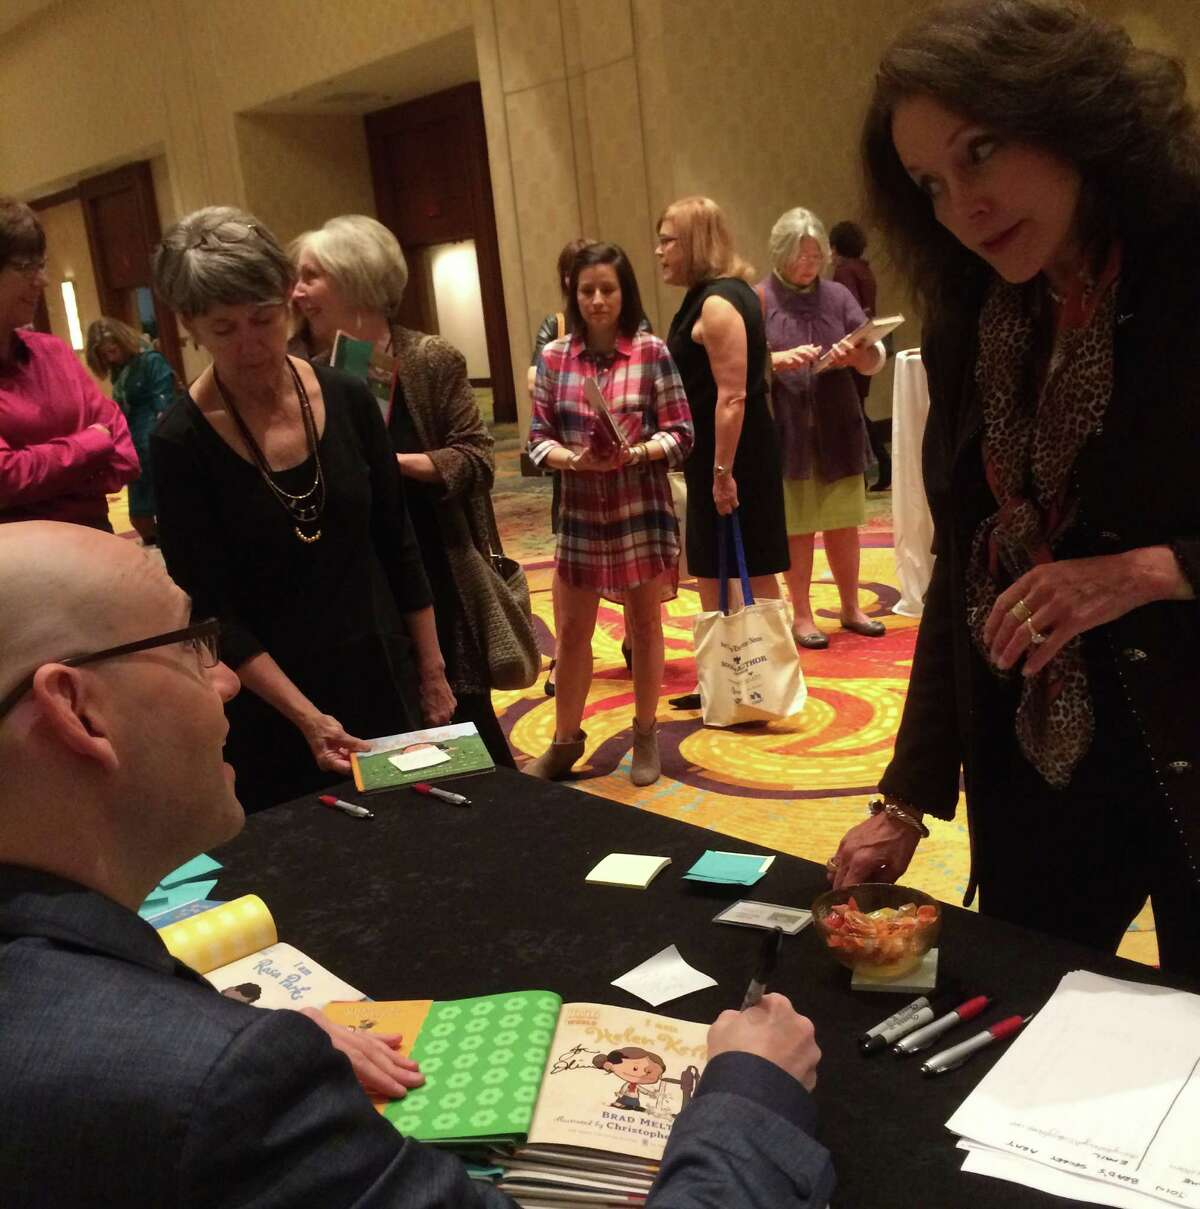 """Author Brad Meltzer, best known for his thrillers such as """"The President's Shadow,"""" signs a stack of children's books at the Express-News Book & Author Luncheon Thursday. His series of """"I am ..."""" books focus on extraordinary people who changed the world, including Heller Keller, Jackie Robinson, Amelia Earhart and Albert Einstein."""